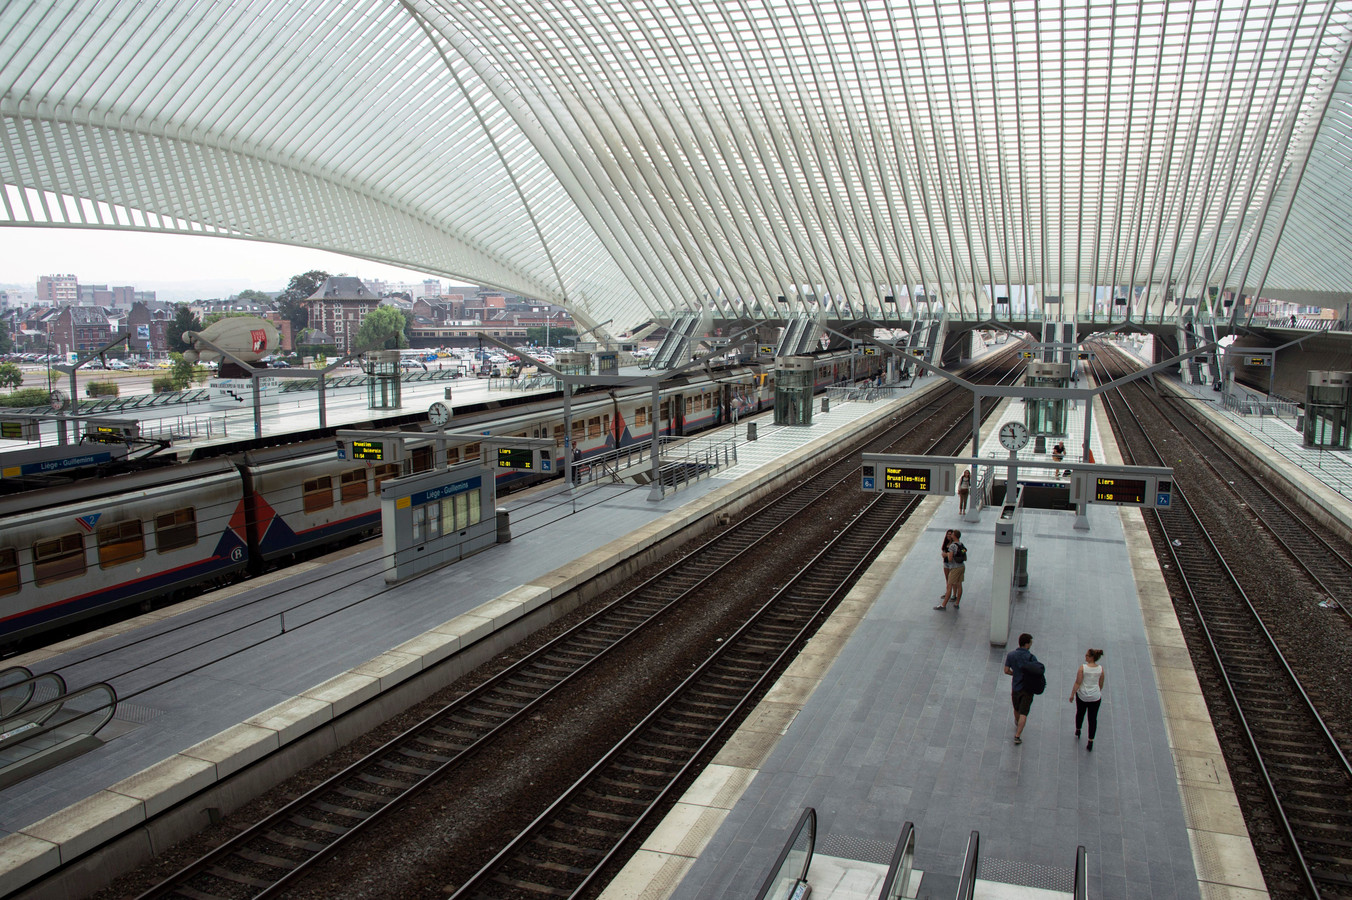 - Liège - Luik * Gare des Guillemins / station 14/8/2015 pict. by Christophe Licoppe © Photo News sncb nmbs